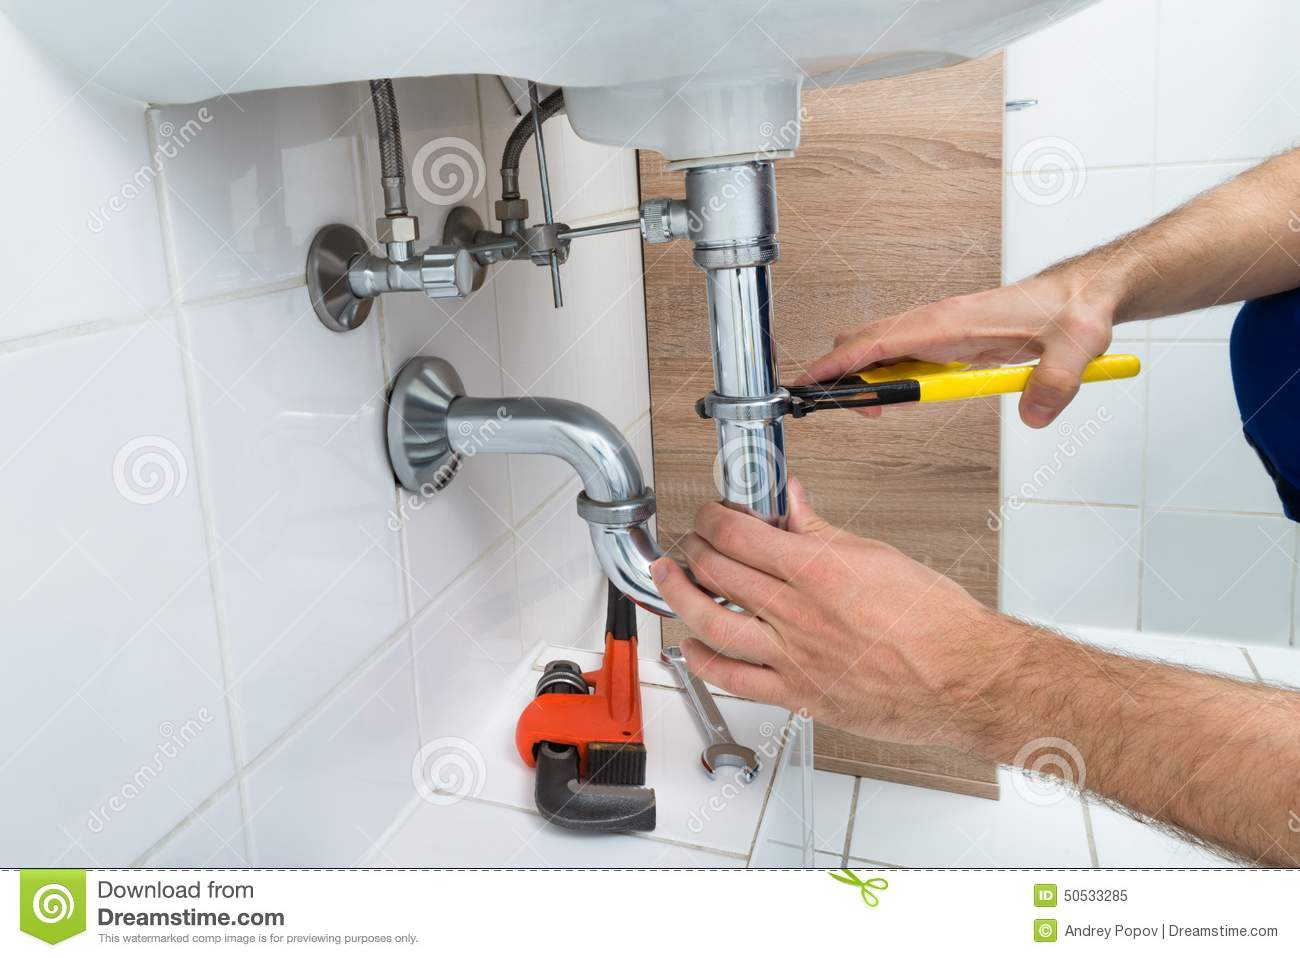 male-plumber-fixing-sink-bathroom-close-up-50533285.jpg